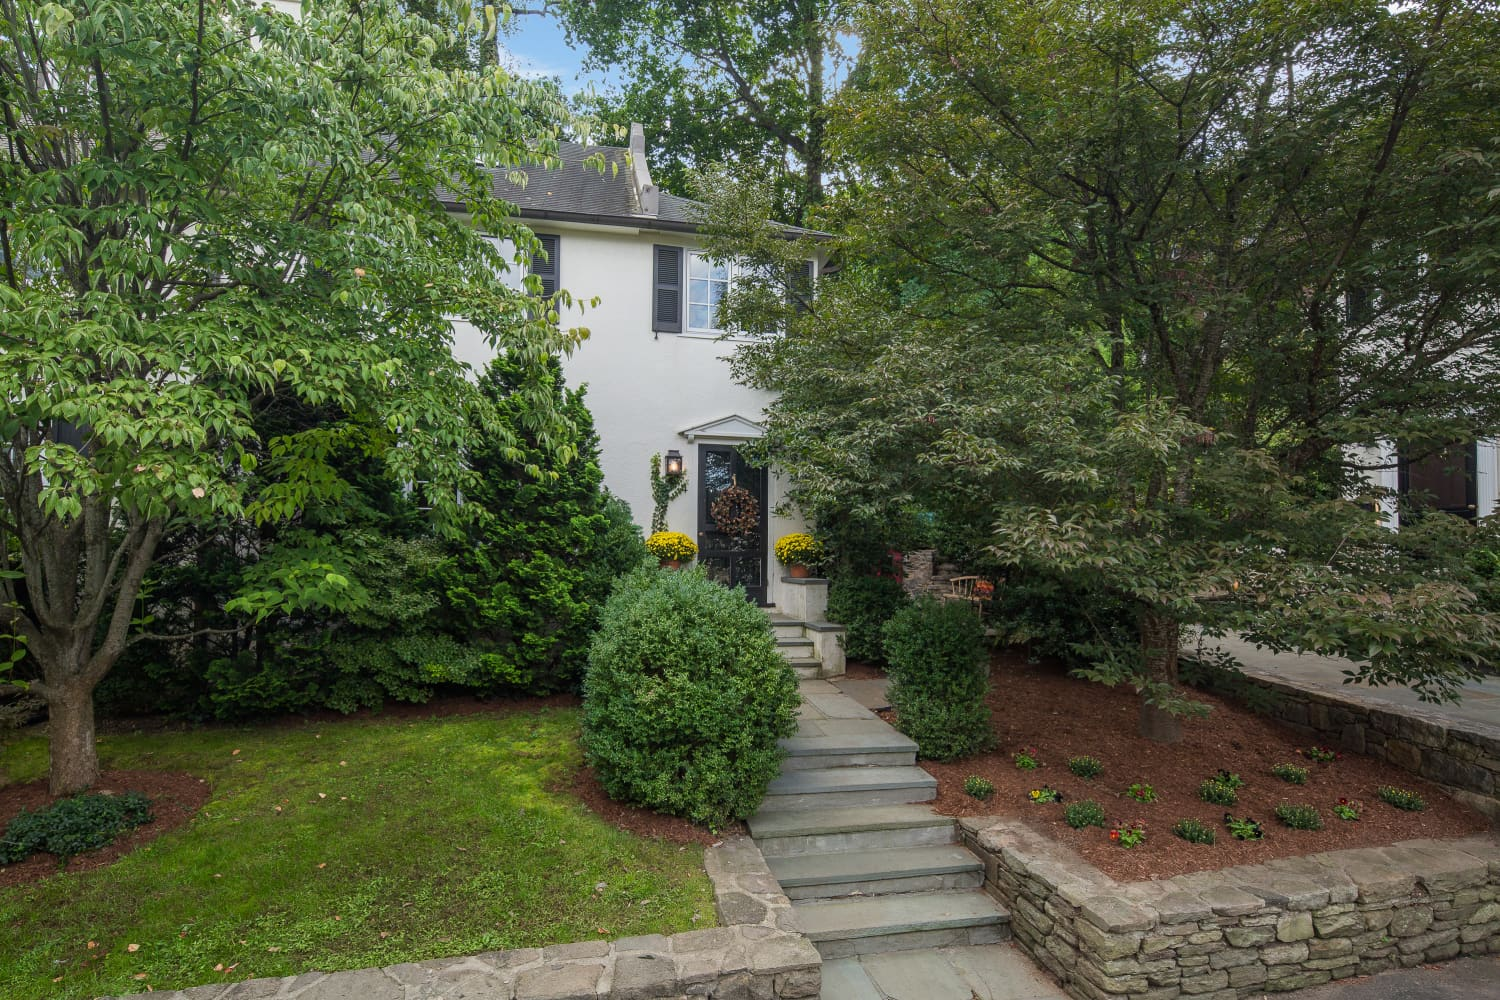 Look Inside: This $1.25M NY Condo Has a Spacious Backyard That Feels Like A Country Retreat